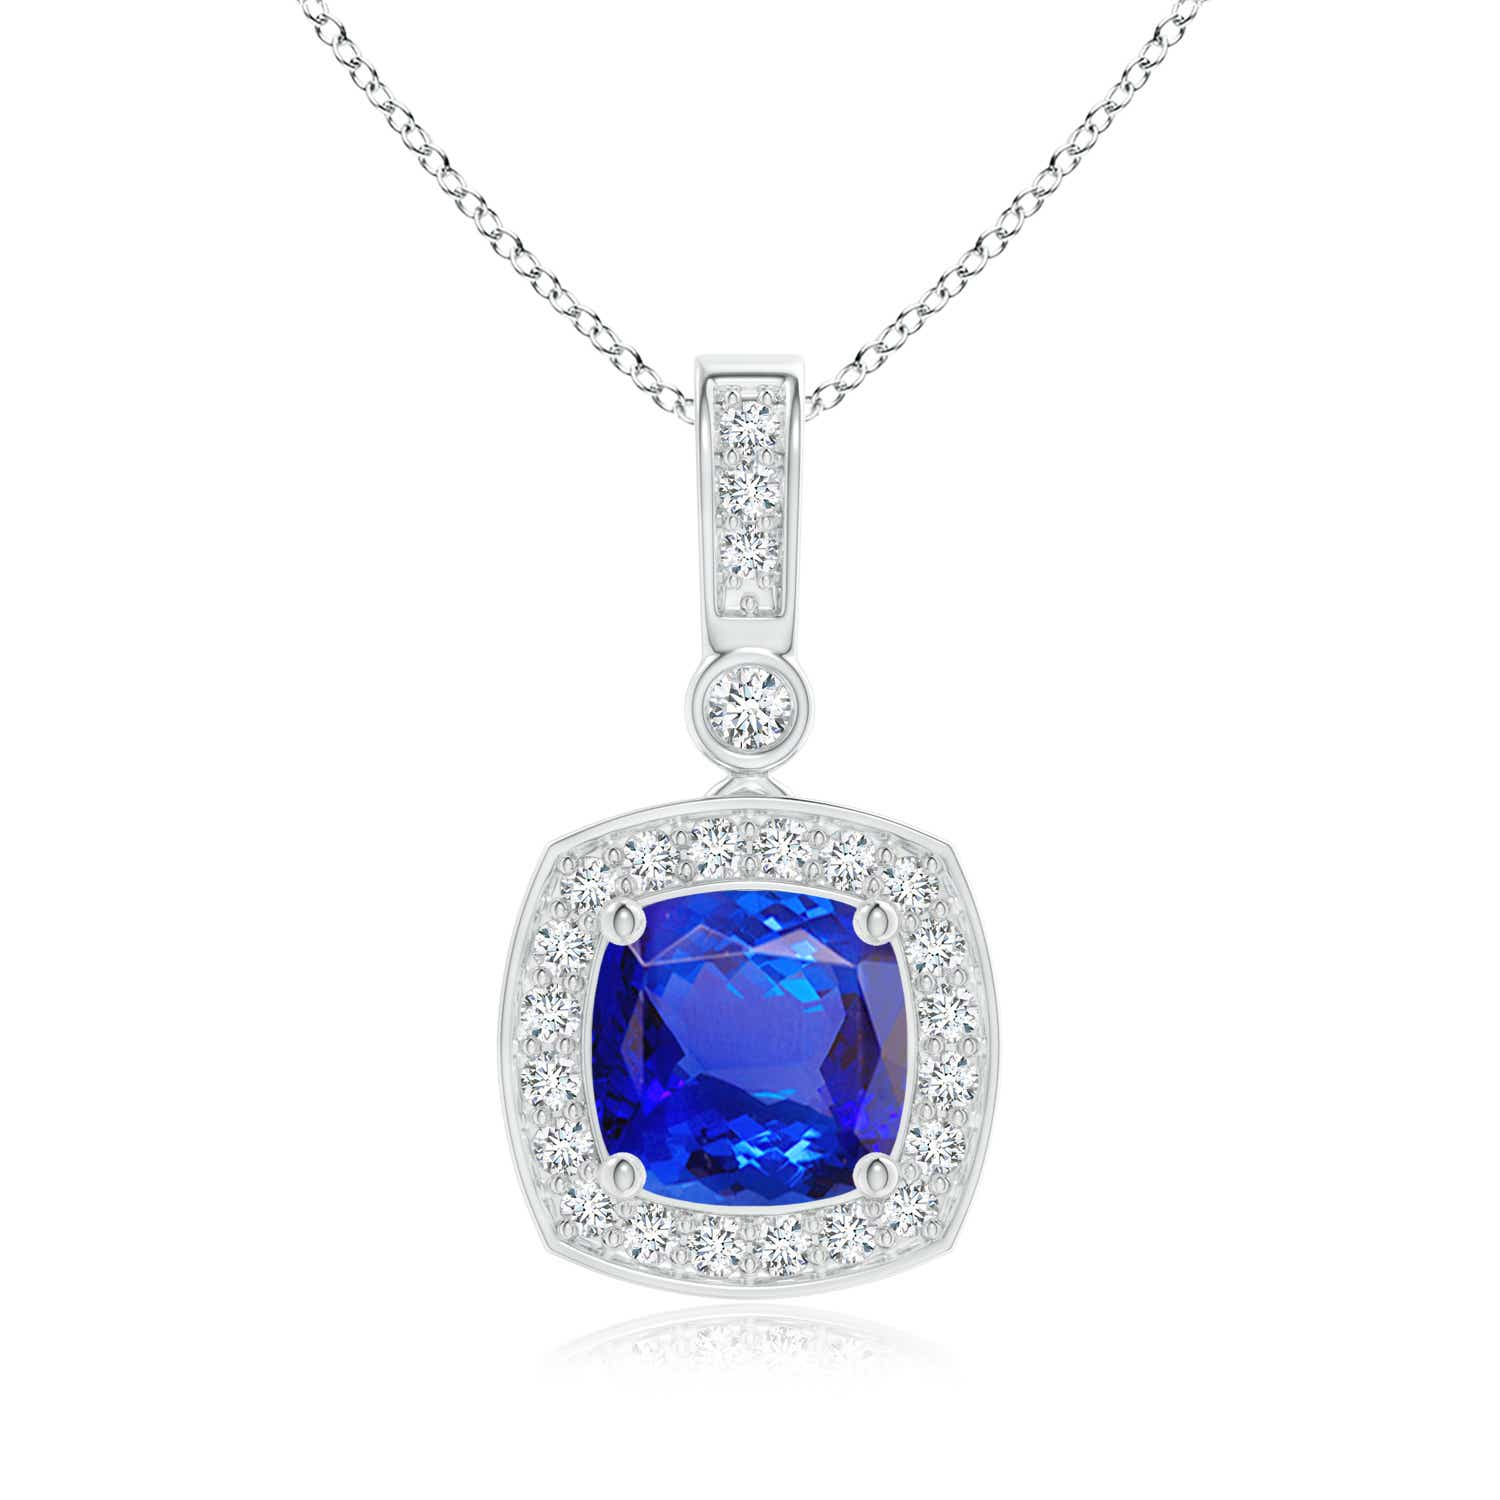 Diamond Halo Vintage Cushion Cut Tanzanite Necklace Pendant - Angara.com